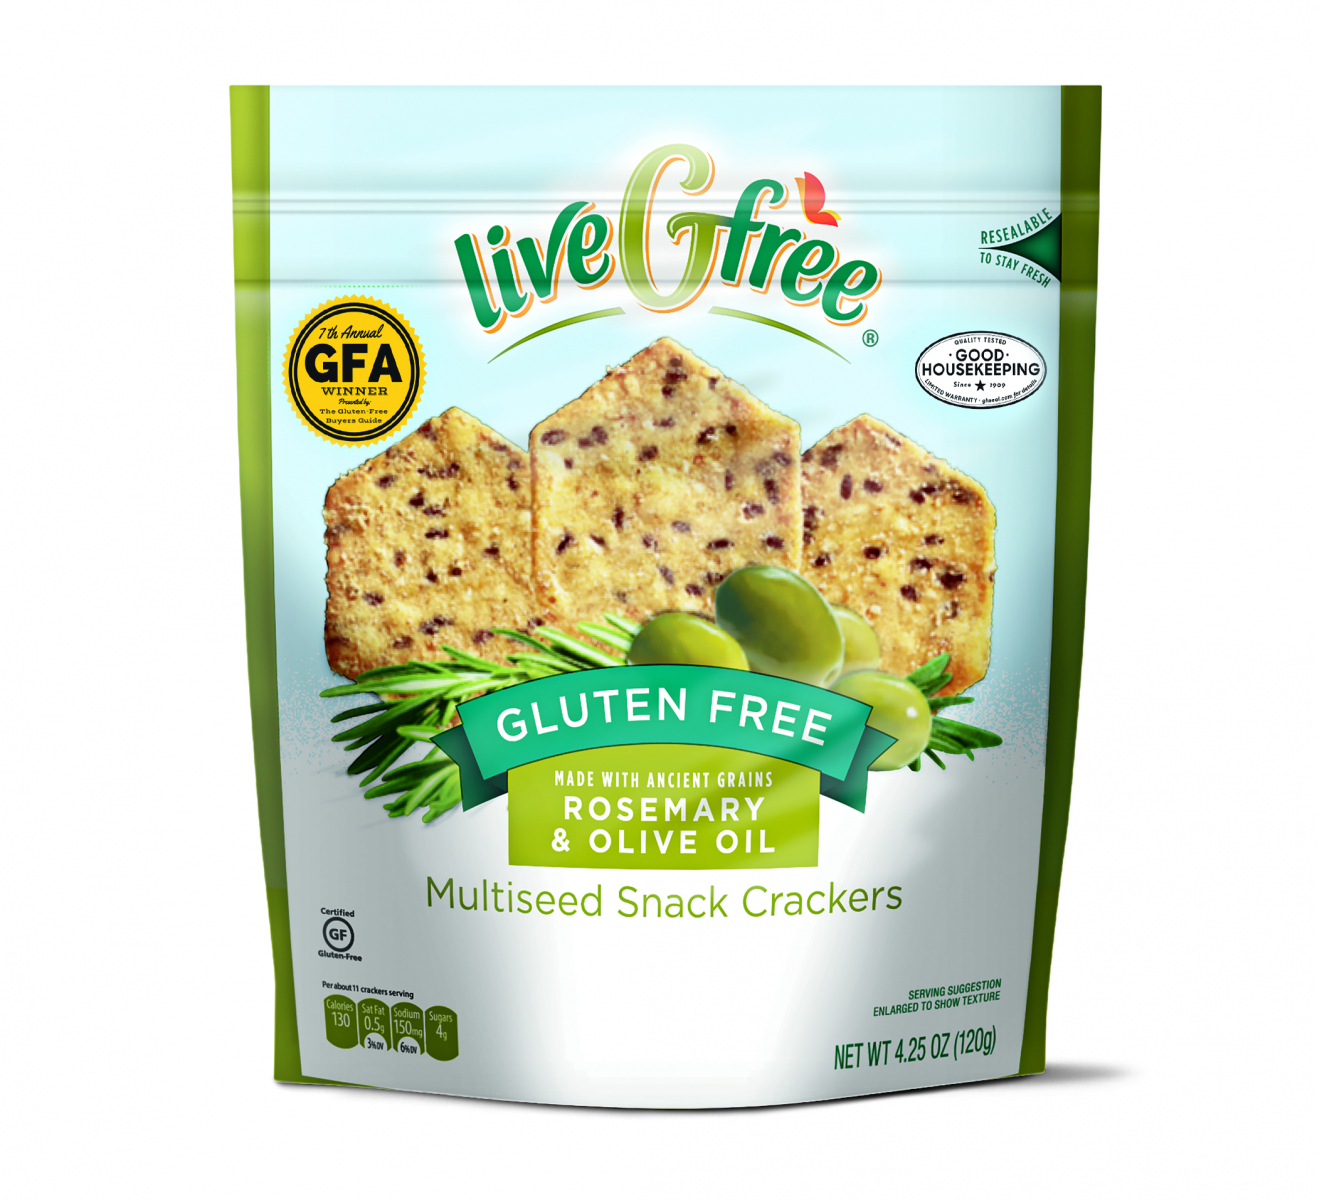 ALDI Adds Tons of New Gluten-Free Products to Shelves - Gluten-Free